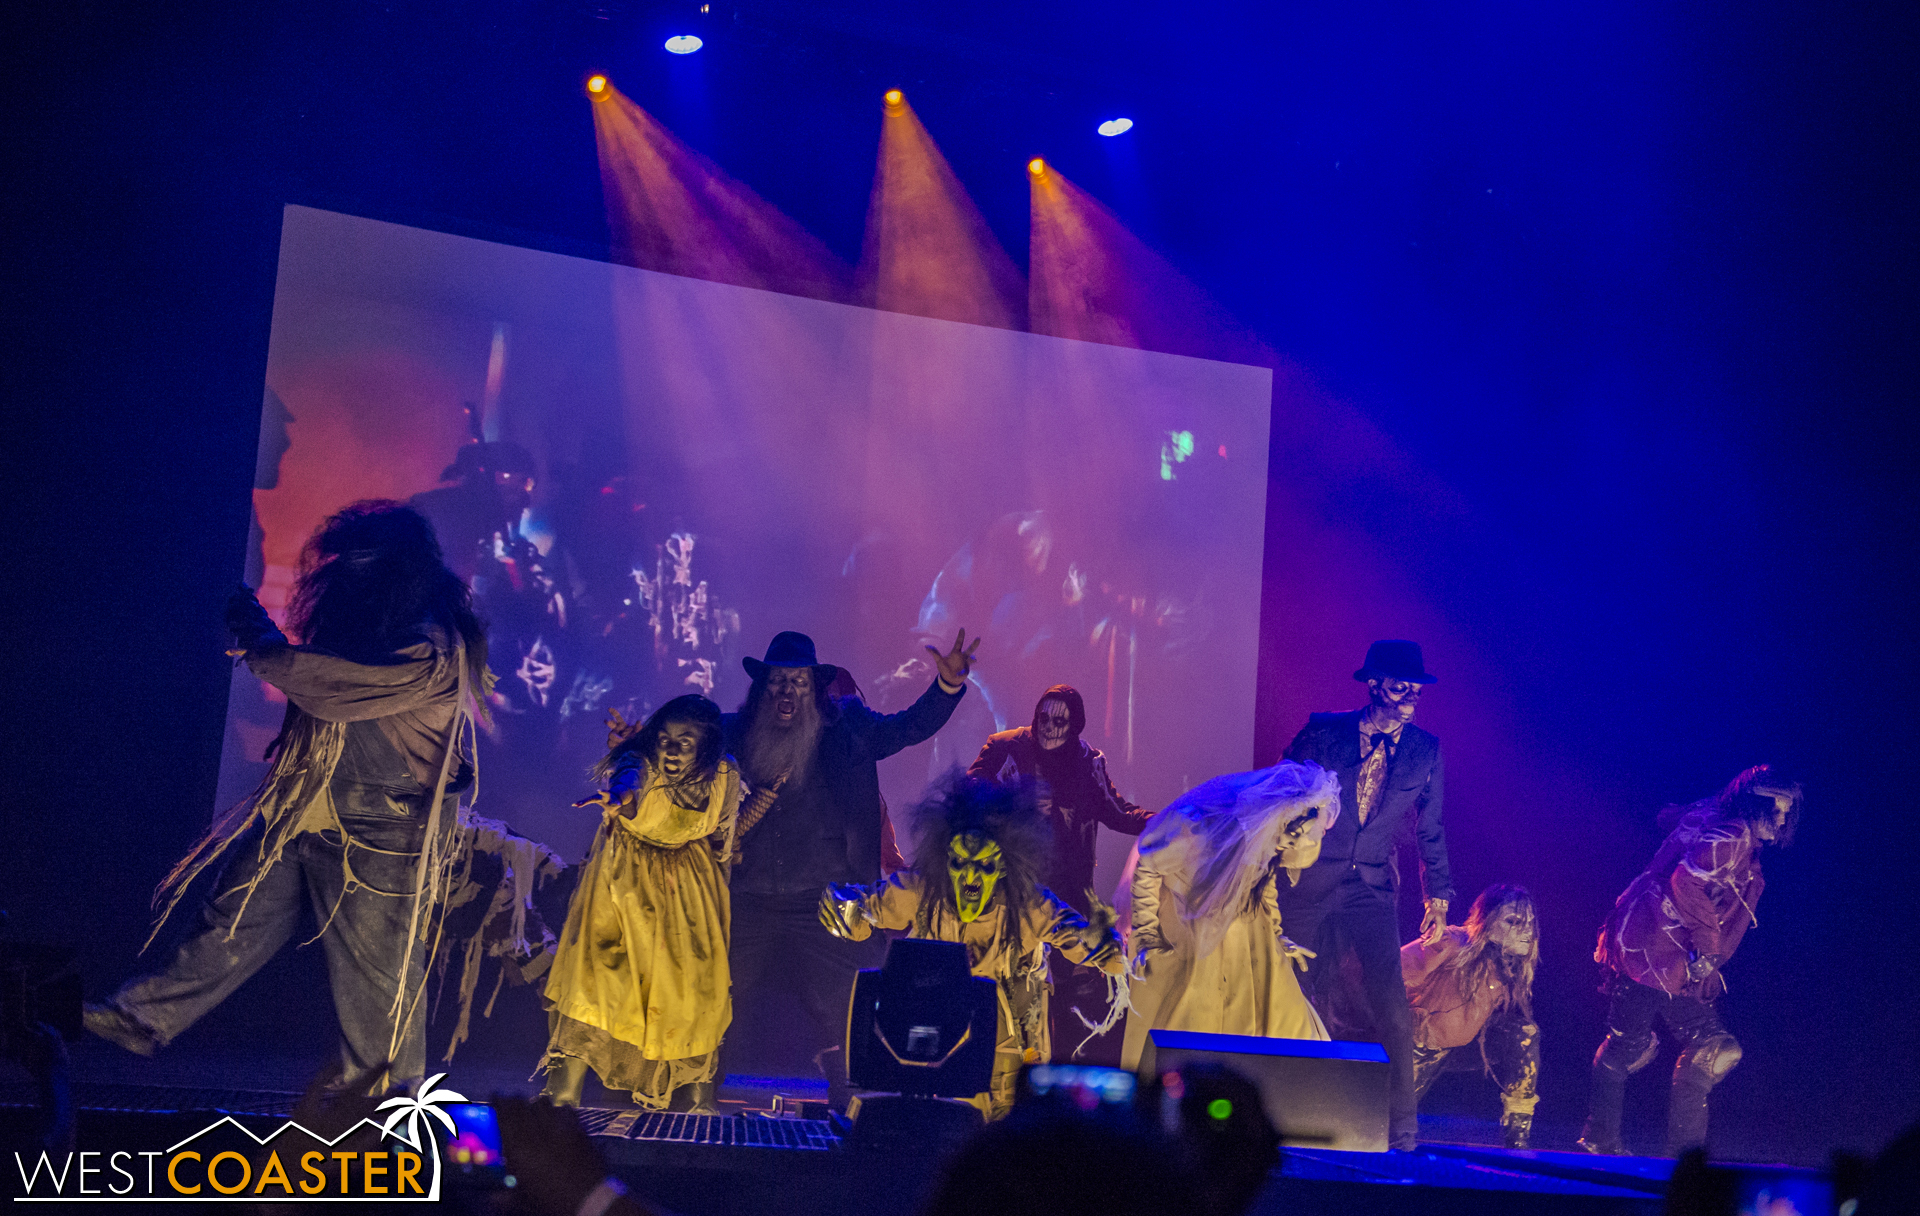 The show began with the ghouls coming out en masse.